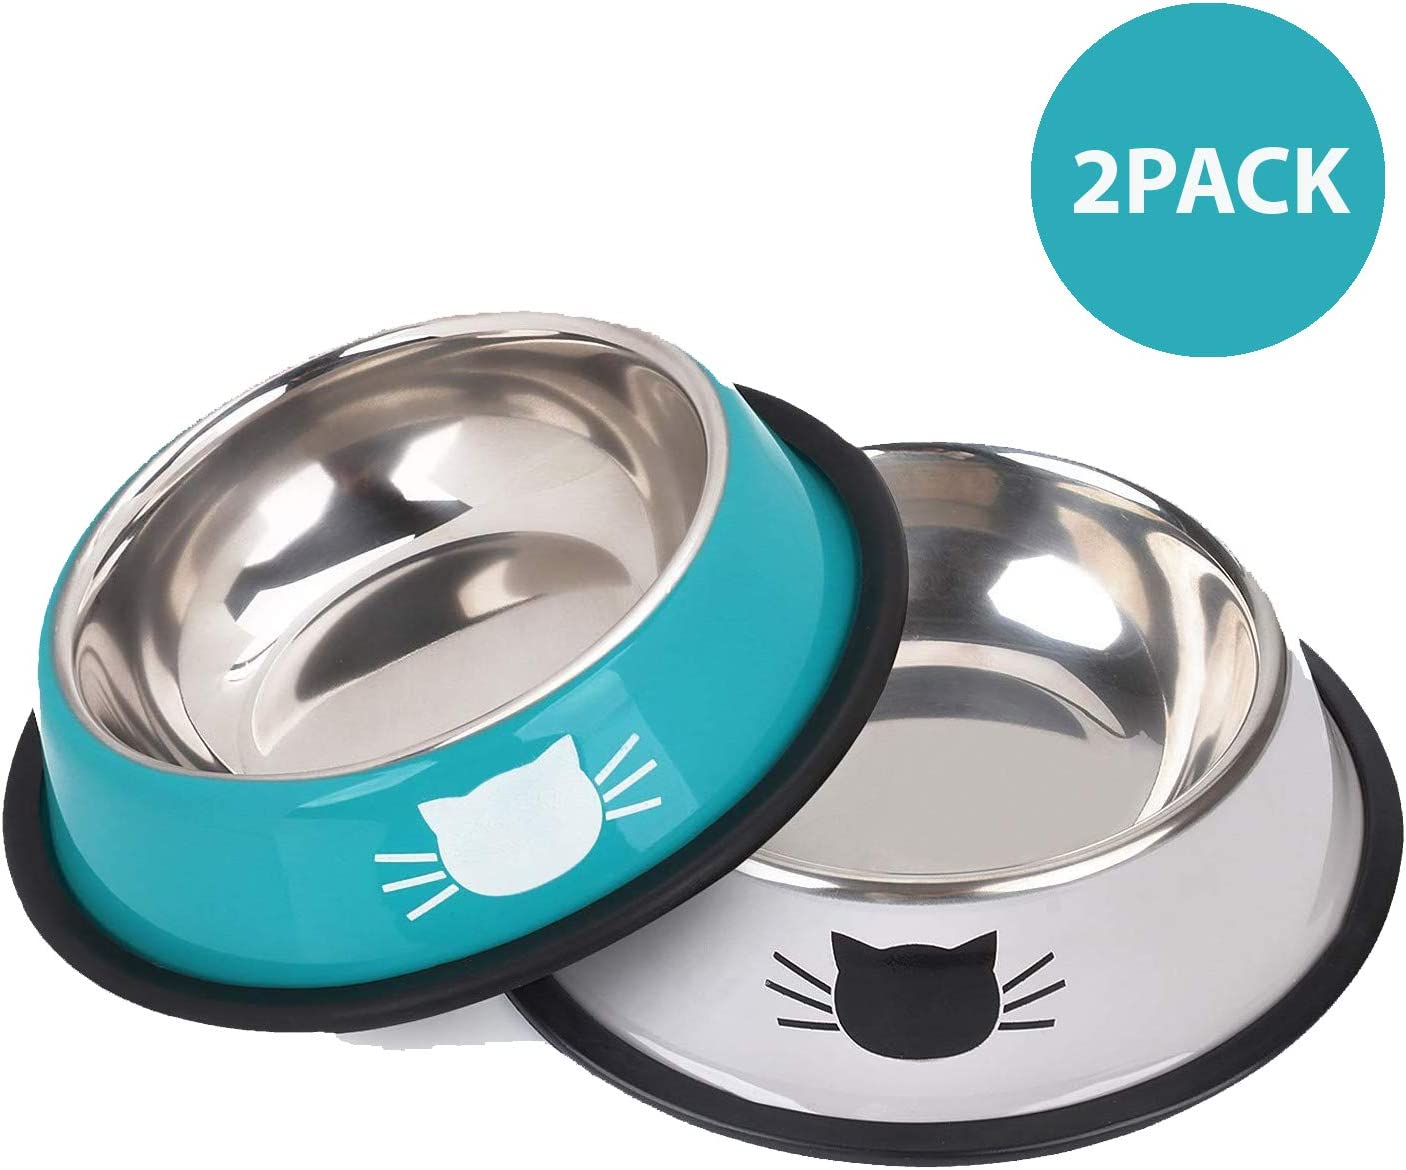 YASMA Cat Bowls Stainless Steel Pet Cat Bowl Kitten Rabbit Cat Dish Bowl with Cute Cats Painted cat Food Dish Easy to Clean Durable Cat Dish for Food and Water